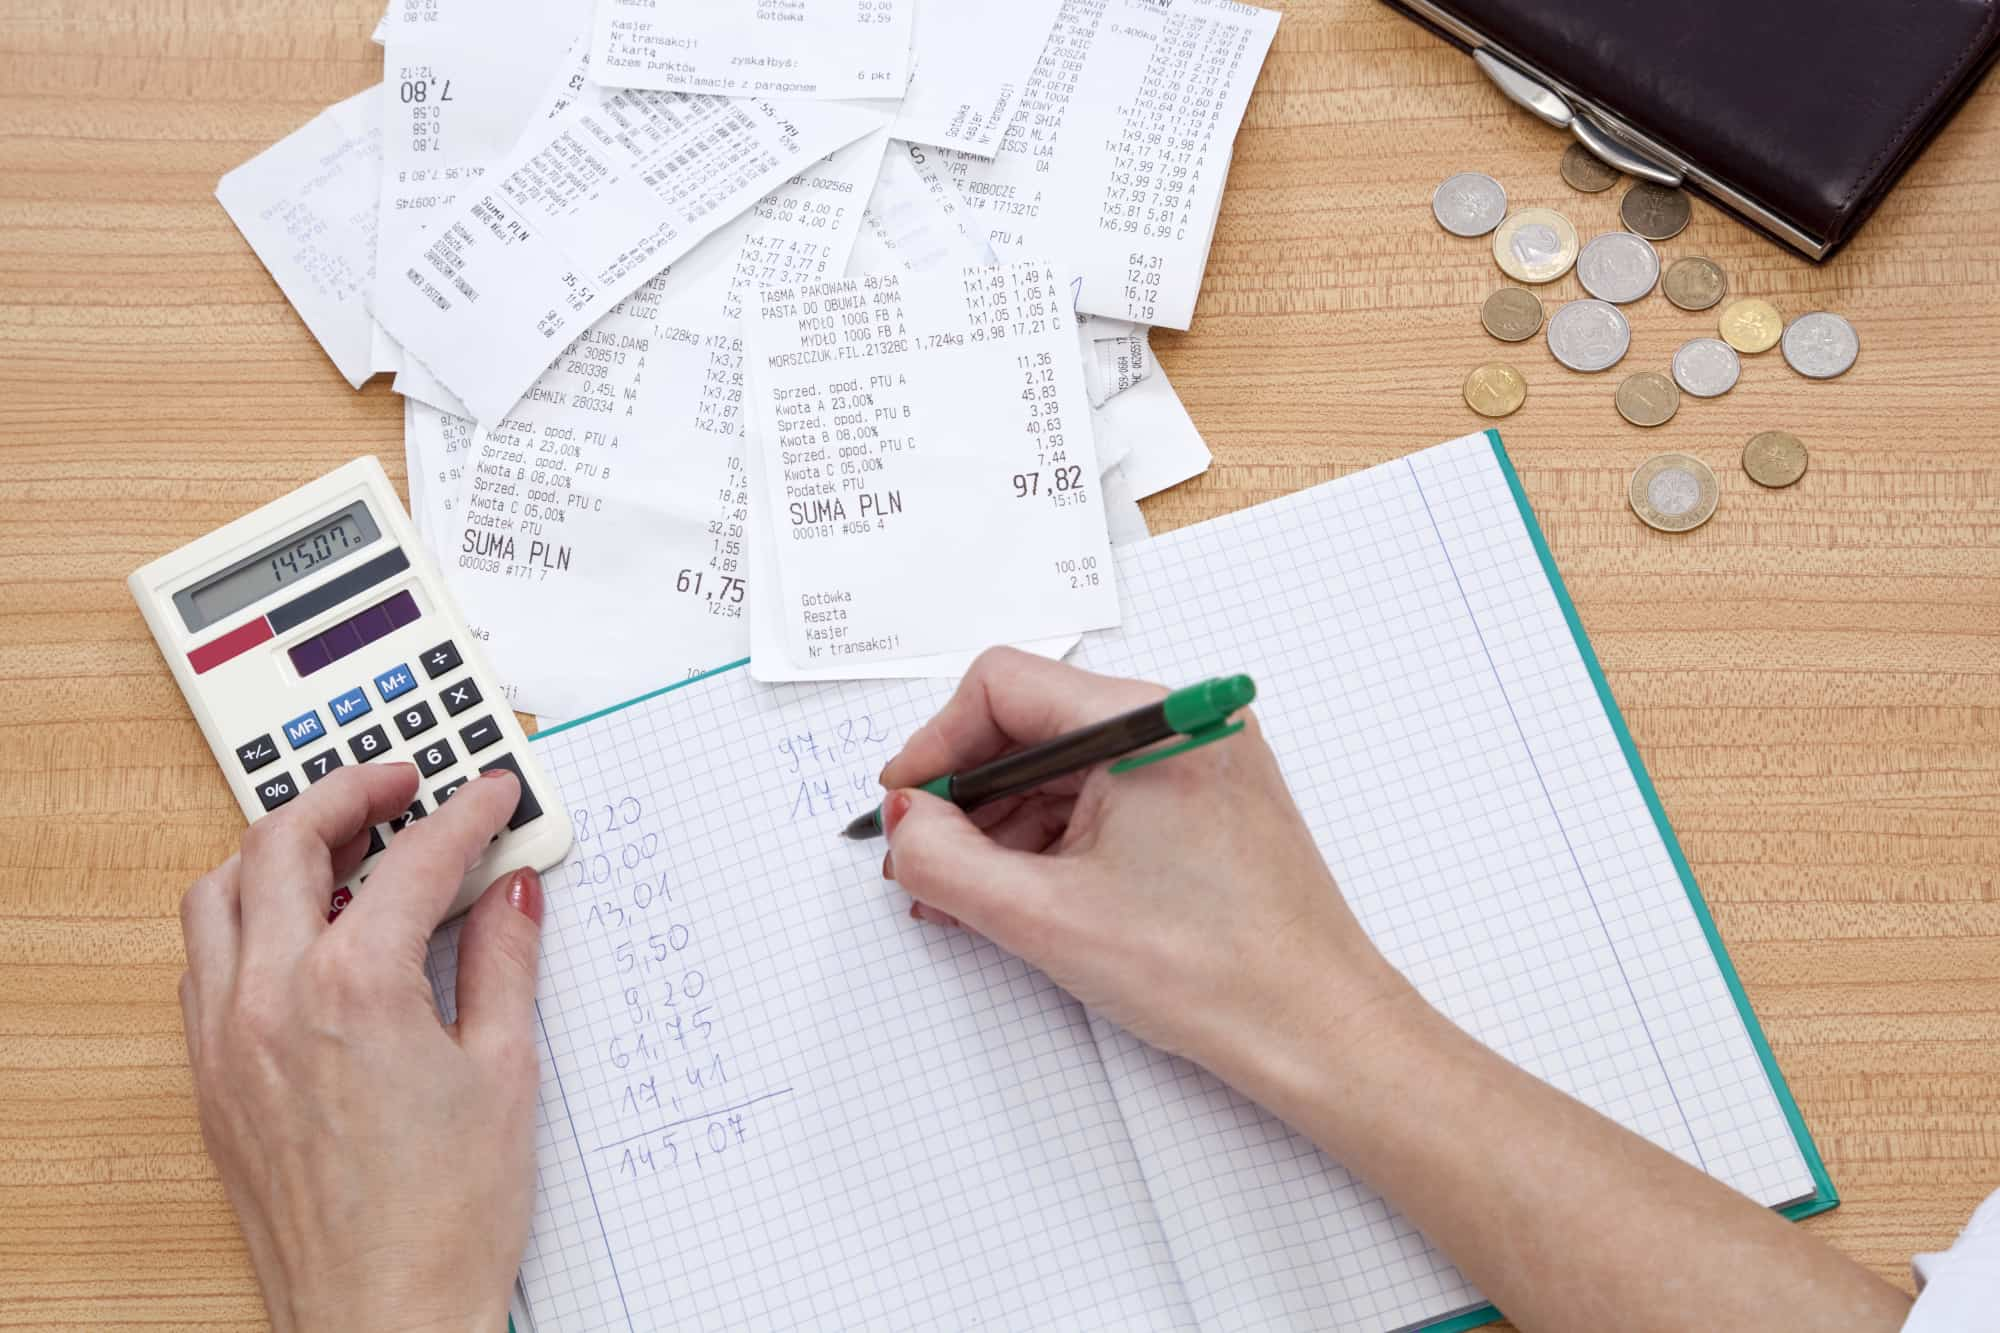 Woman calculating receipts to total all of the day's business expenses for recording.